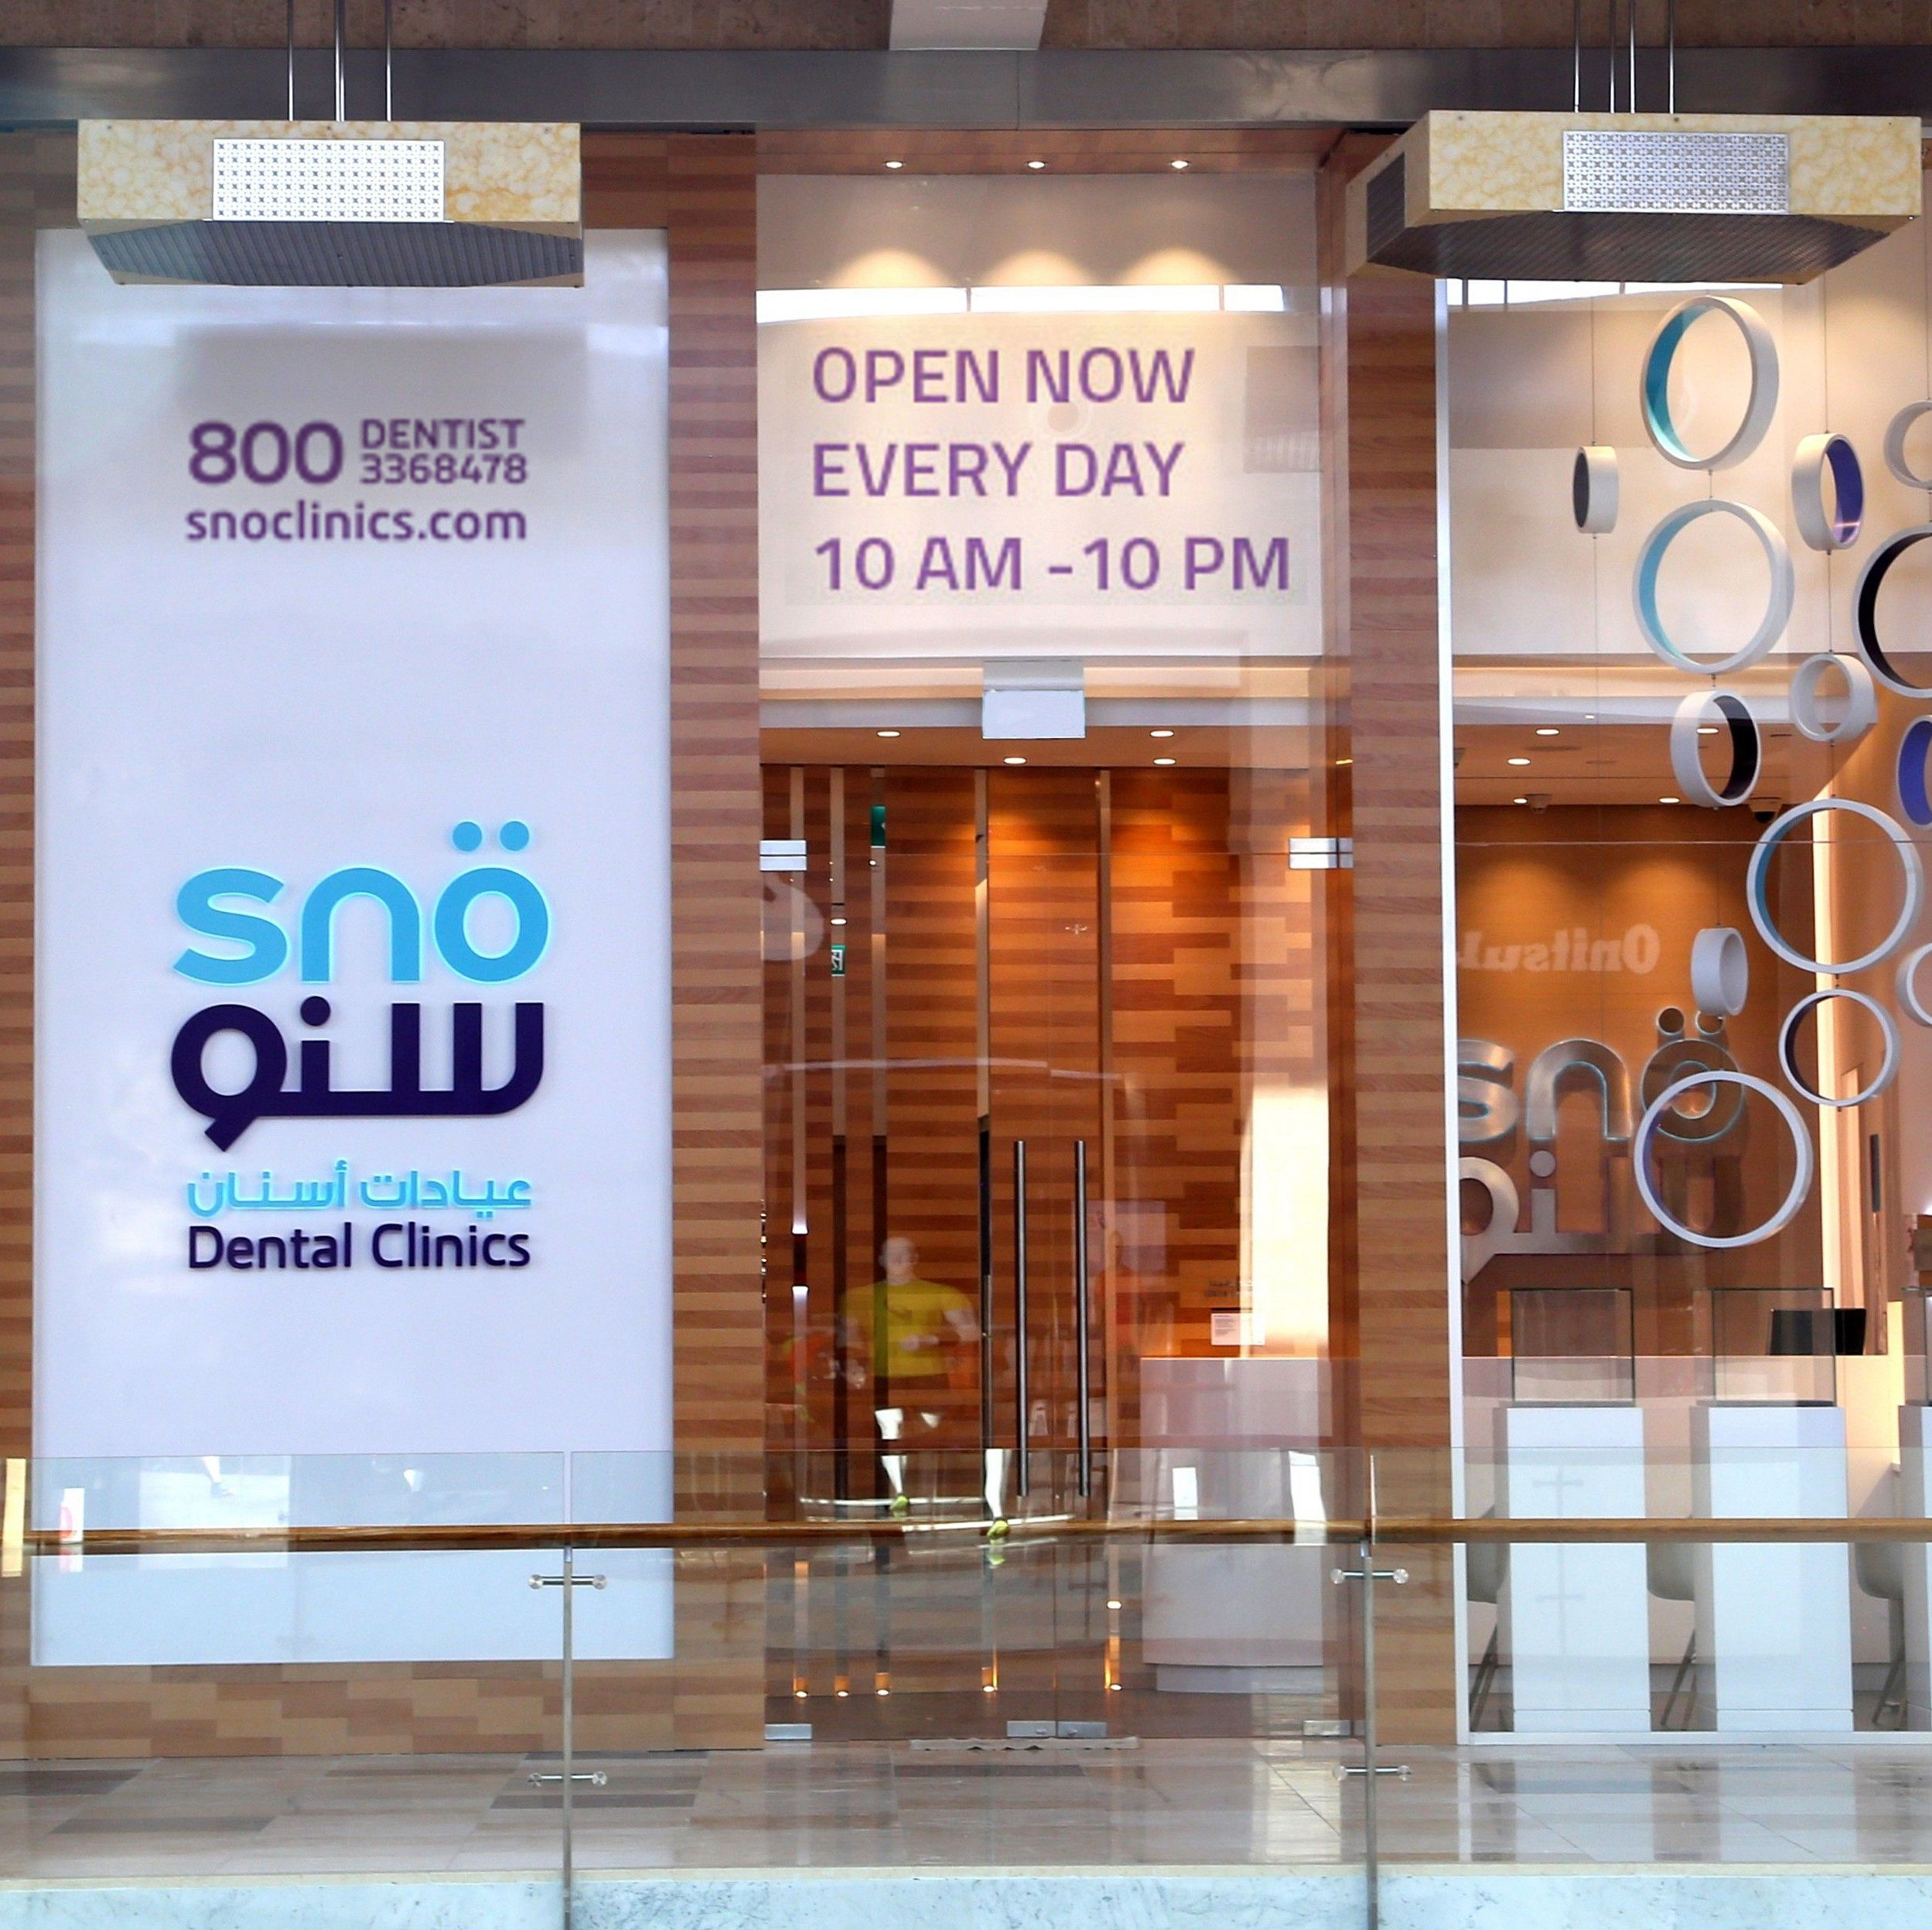 Certainly the most beautiful dental clinic in town come and see come and see yourself every day between 10am and 10pm at yas mall call 800 dentist to book an appointment or just drop in solutioingenieria Gallery